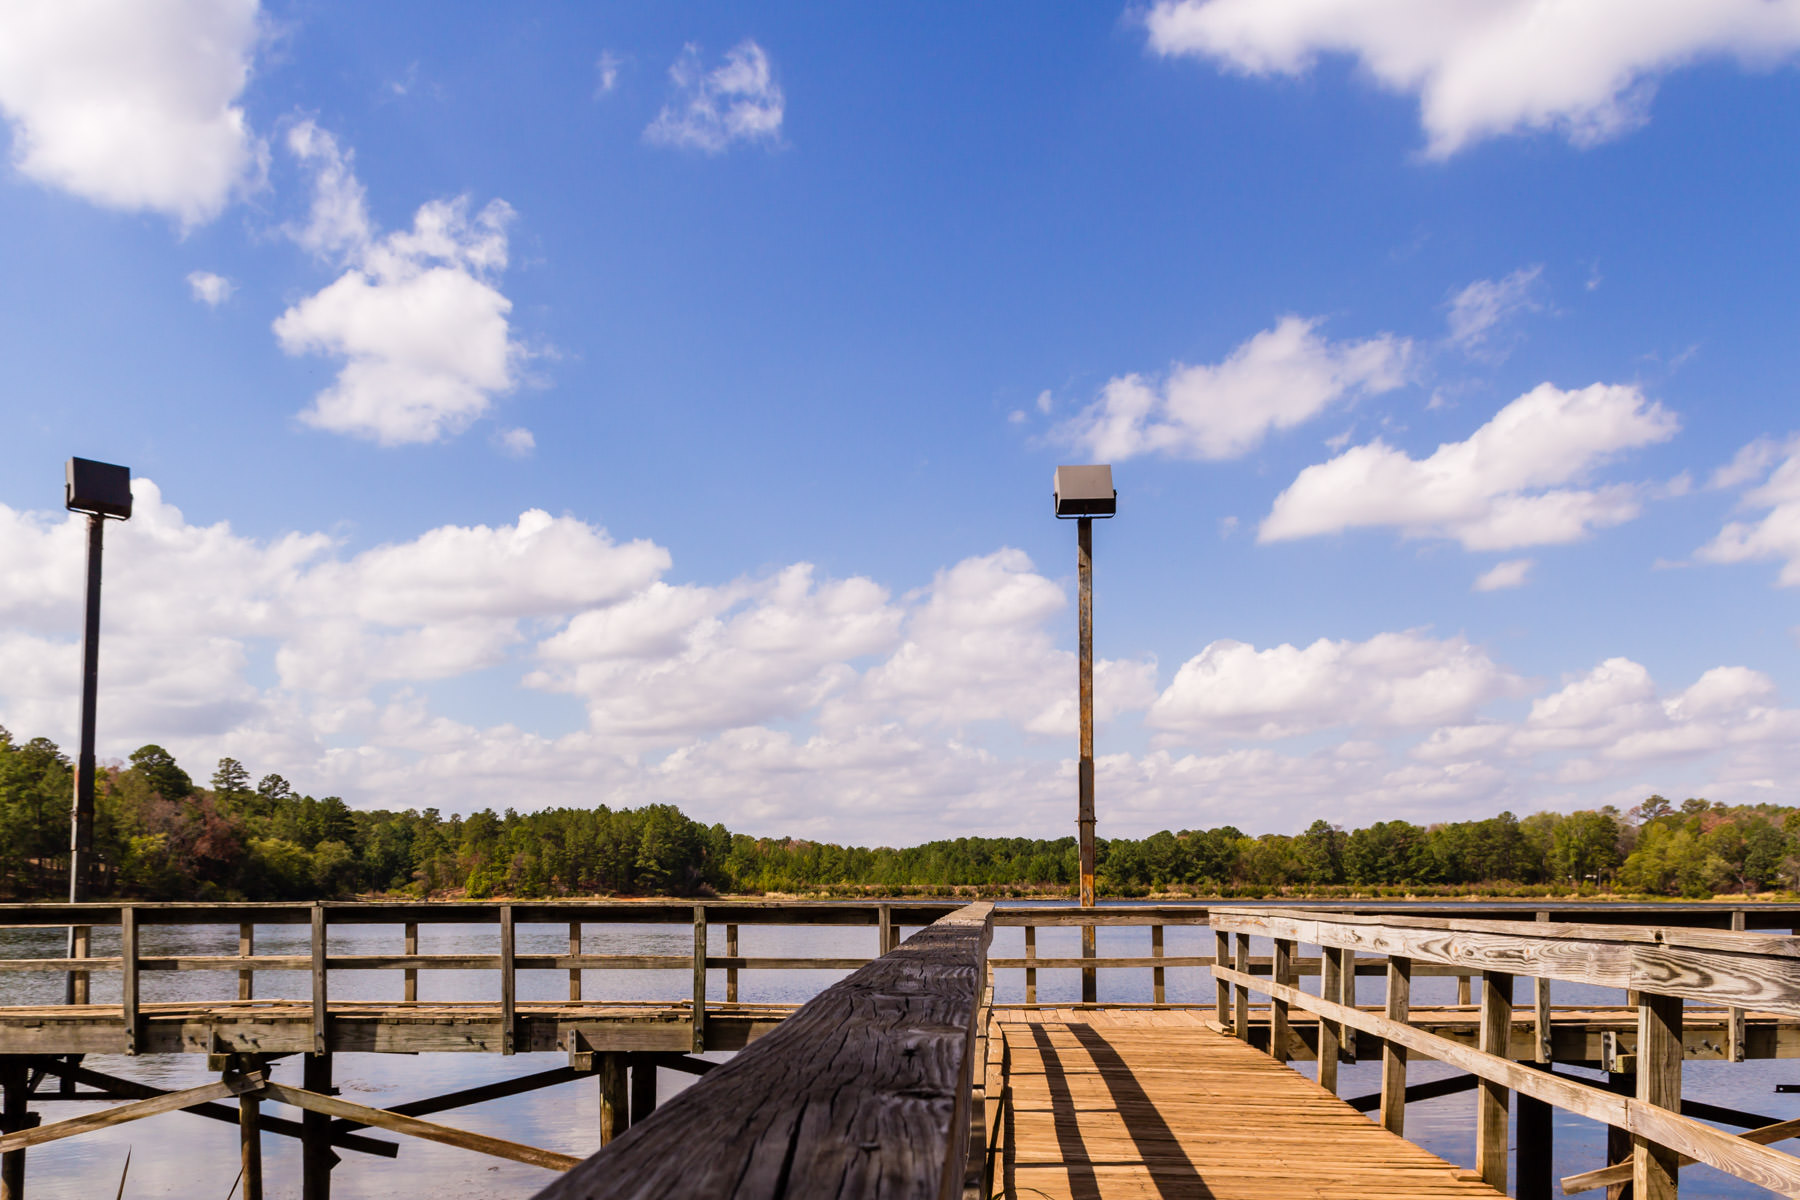 A fishing pier at Tyler State Park, Texas.